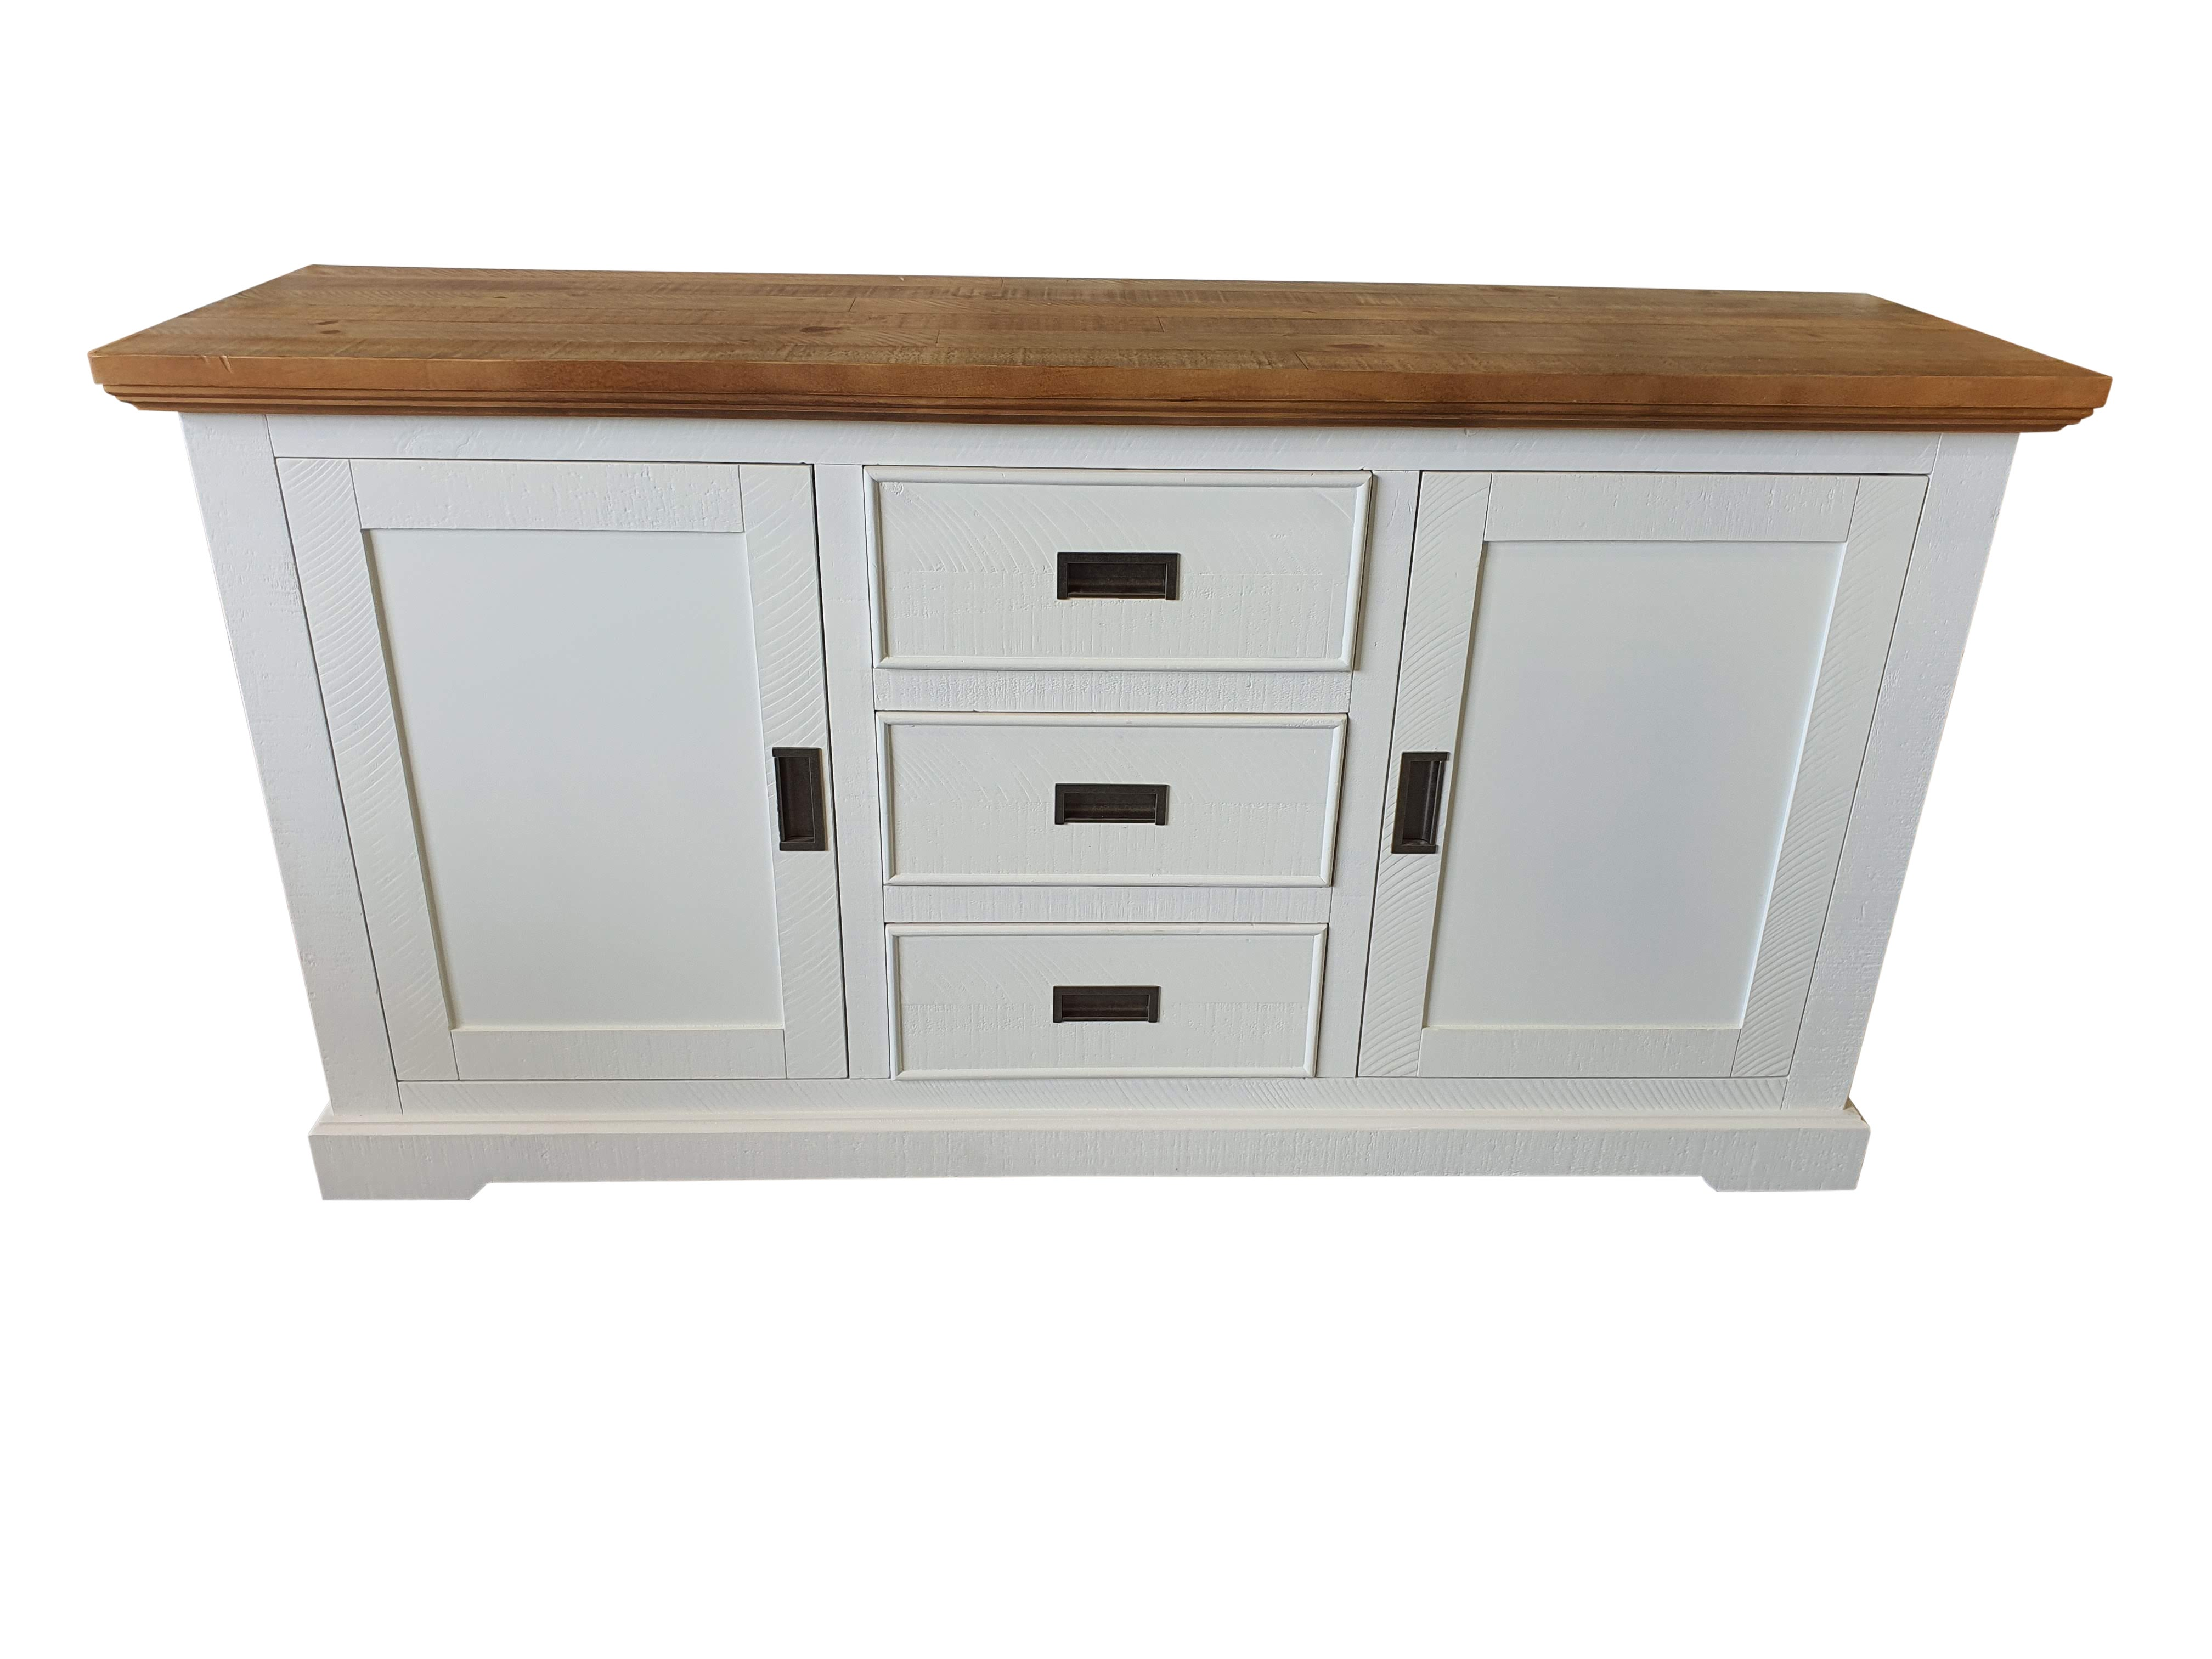 Hamptons Rustic White Timber Sideboard Buffet Cabinet - Realyn